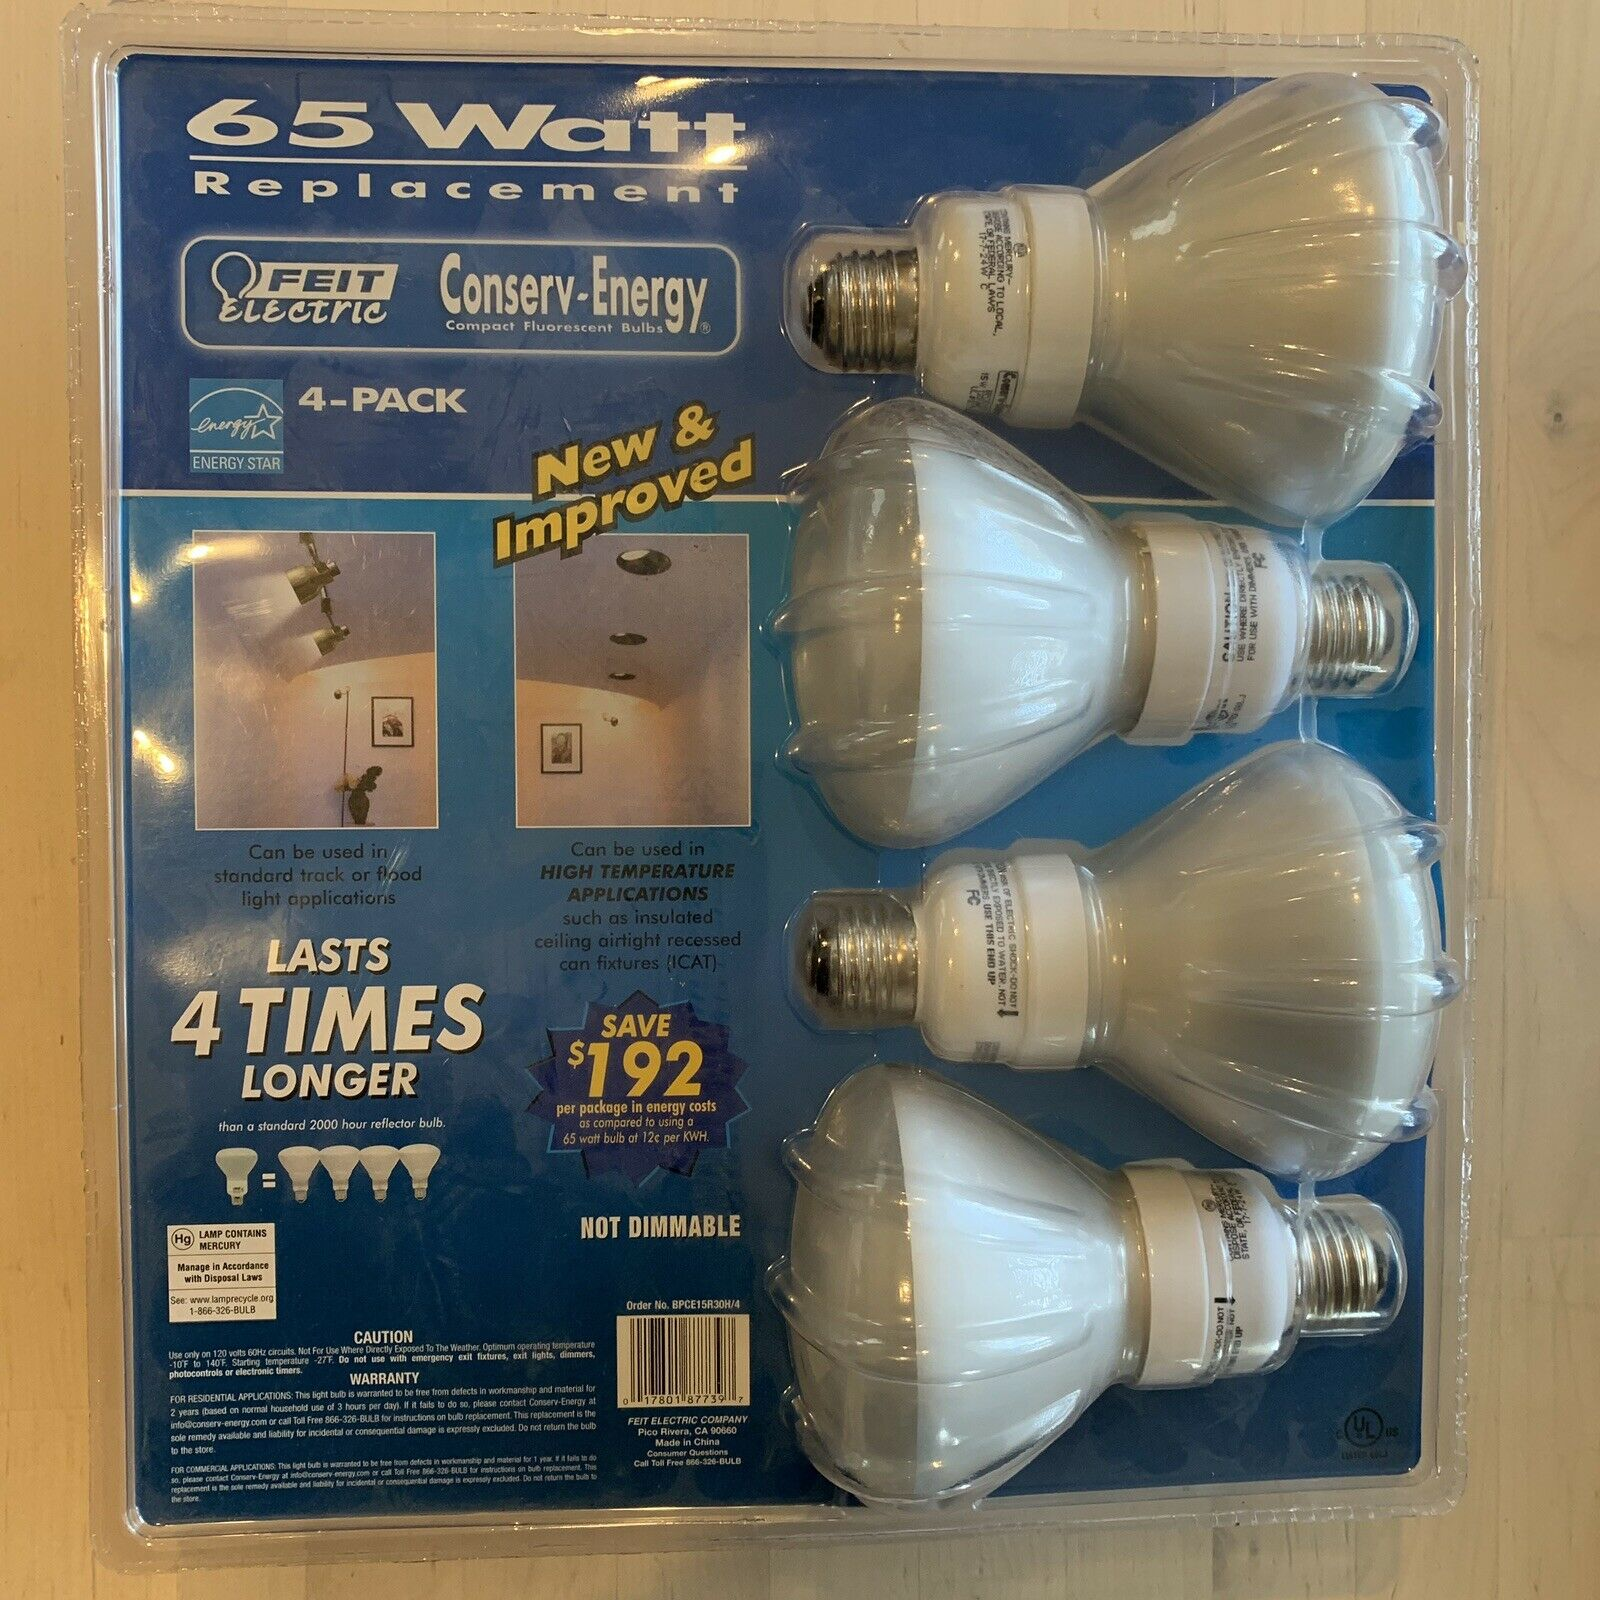 Replacement for Light Bulb//Lamp 75r30//b Light Bulb by Technical Precision 2 Pack